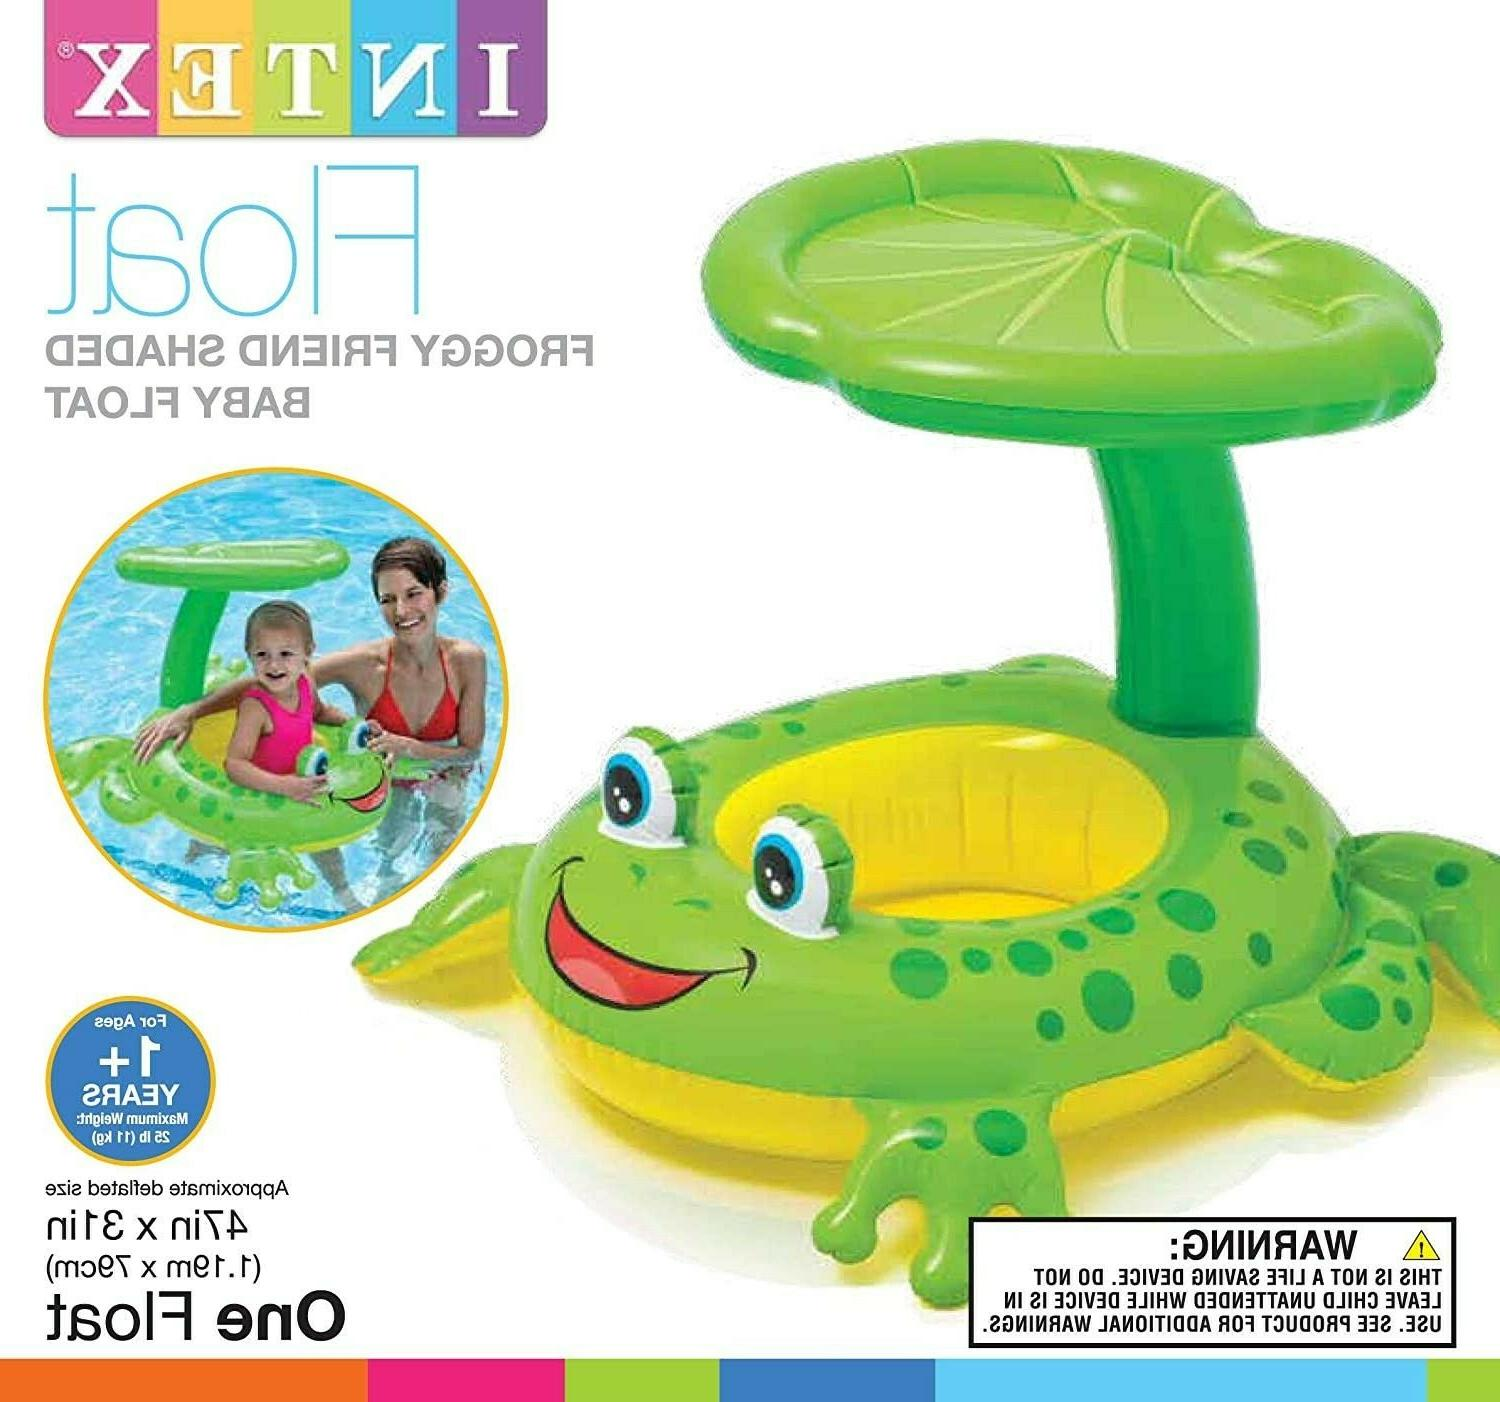 froggy friend shaded baby float toy kids